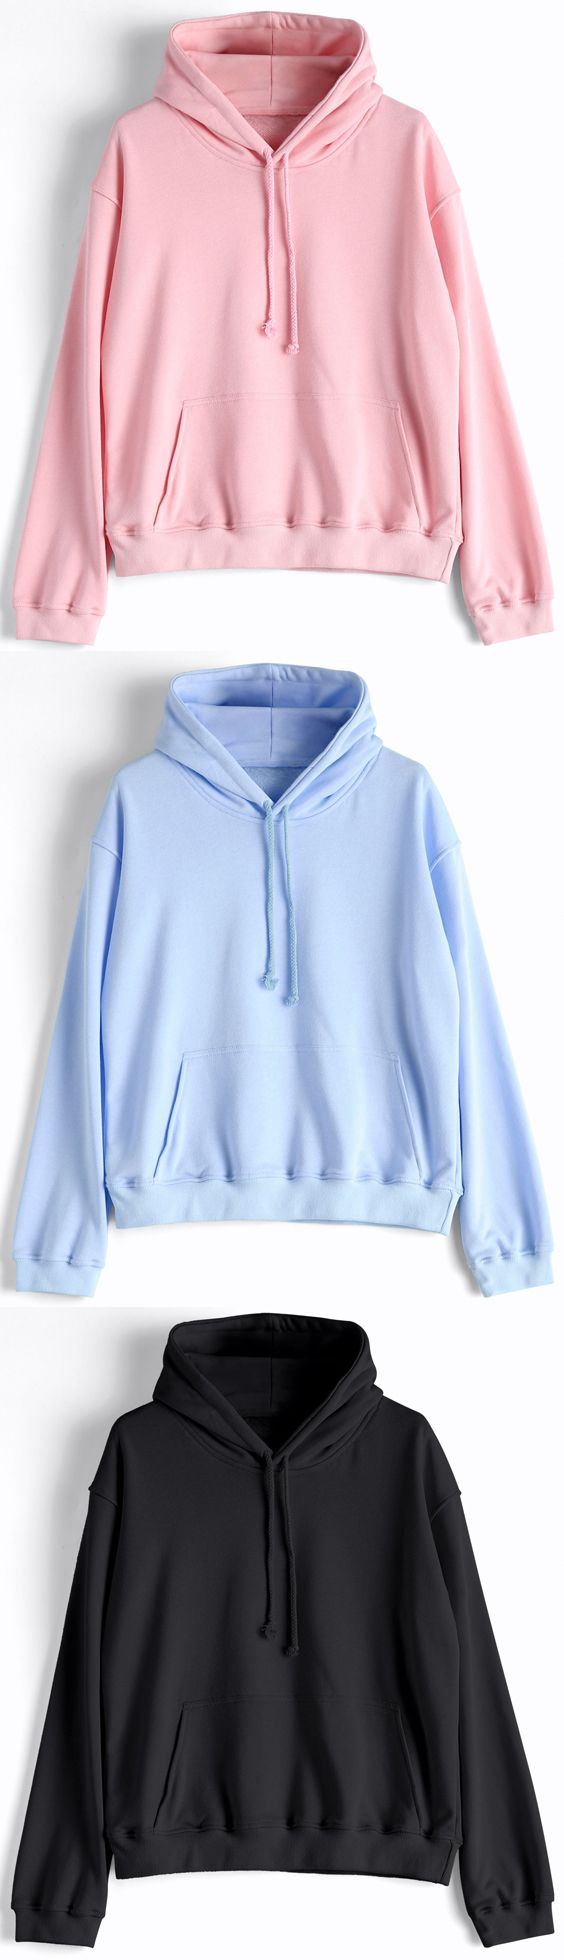 Up to 80% OFF!  Casual Kangaroo Pocket Plain Hoodie. Zaful,zaful.com,zaful fashion,tops,womens tops,outerwear,sweatshirts,hoodies,hoodies outfit,hoodies for teens,sweatshirts outfit,long sleeve tops,sweatshirts for teens,winter outfits,fall outfits,tops,sweatshirts for women,women's hoodies,womens sweatshirts,crop top hoodie,cute sweatshirts,floral hoodie,crop hoodies,designer hoodies,oversized sweatshirt @zaful Extra 10% OFF Code:ZF2017